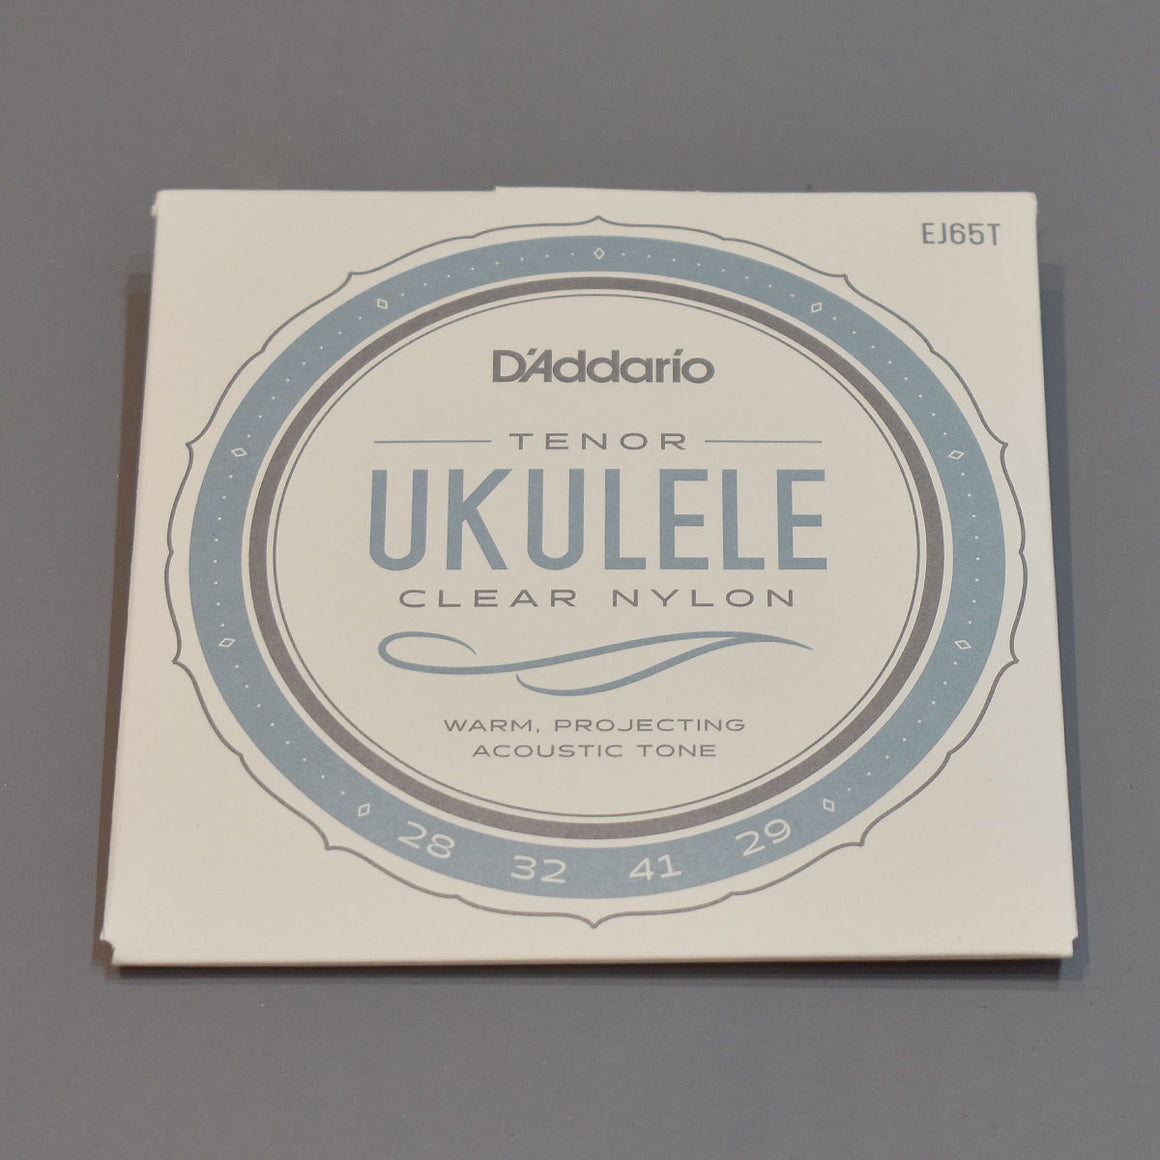 D'Addario Ukulele Tenor Clear Nylon Strings EJ65T